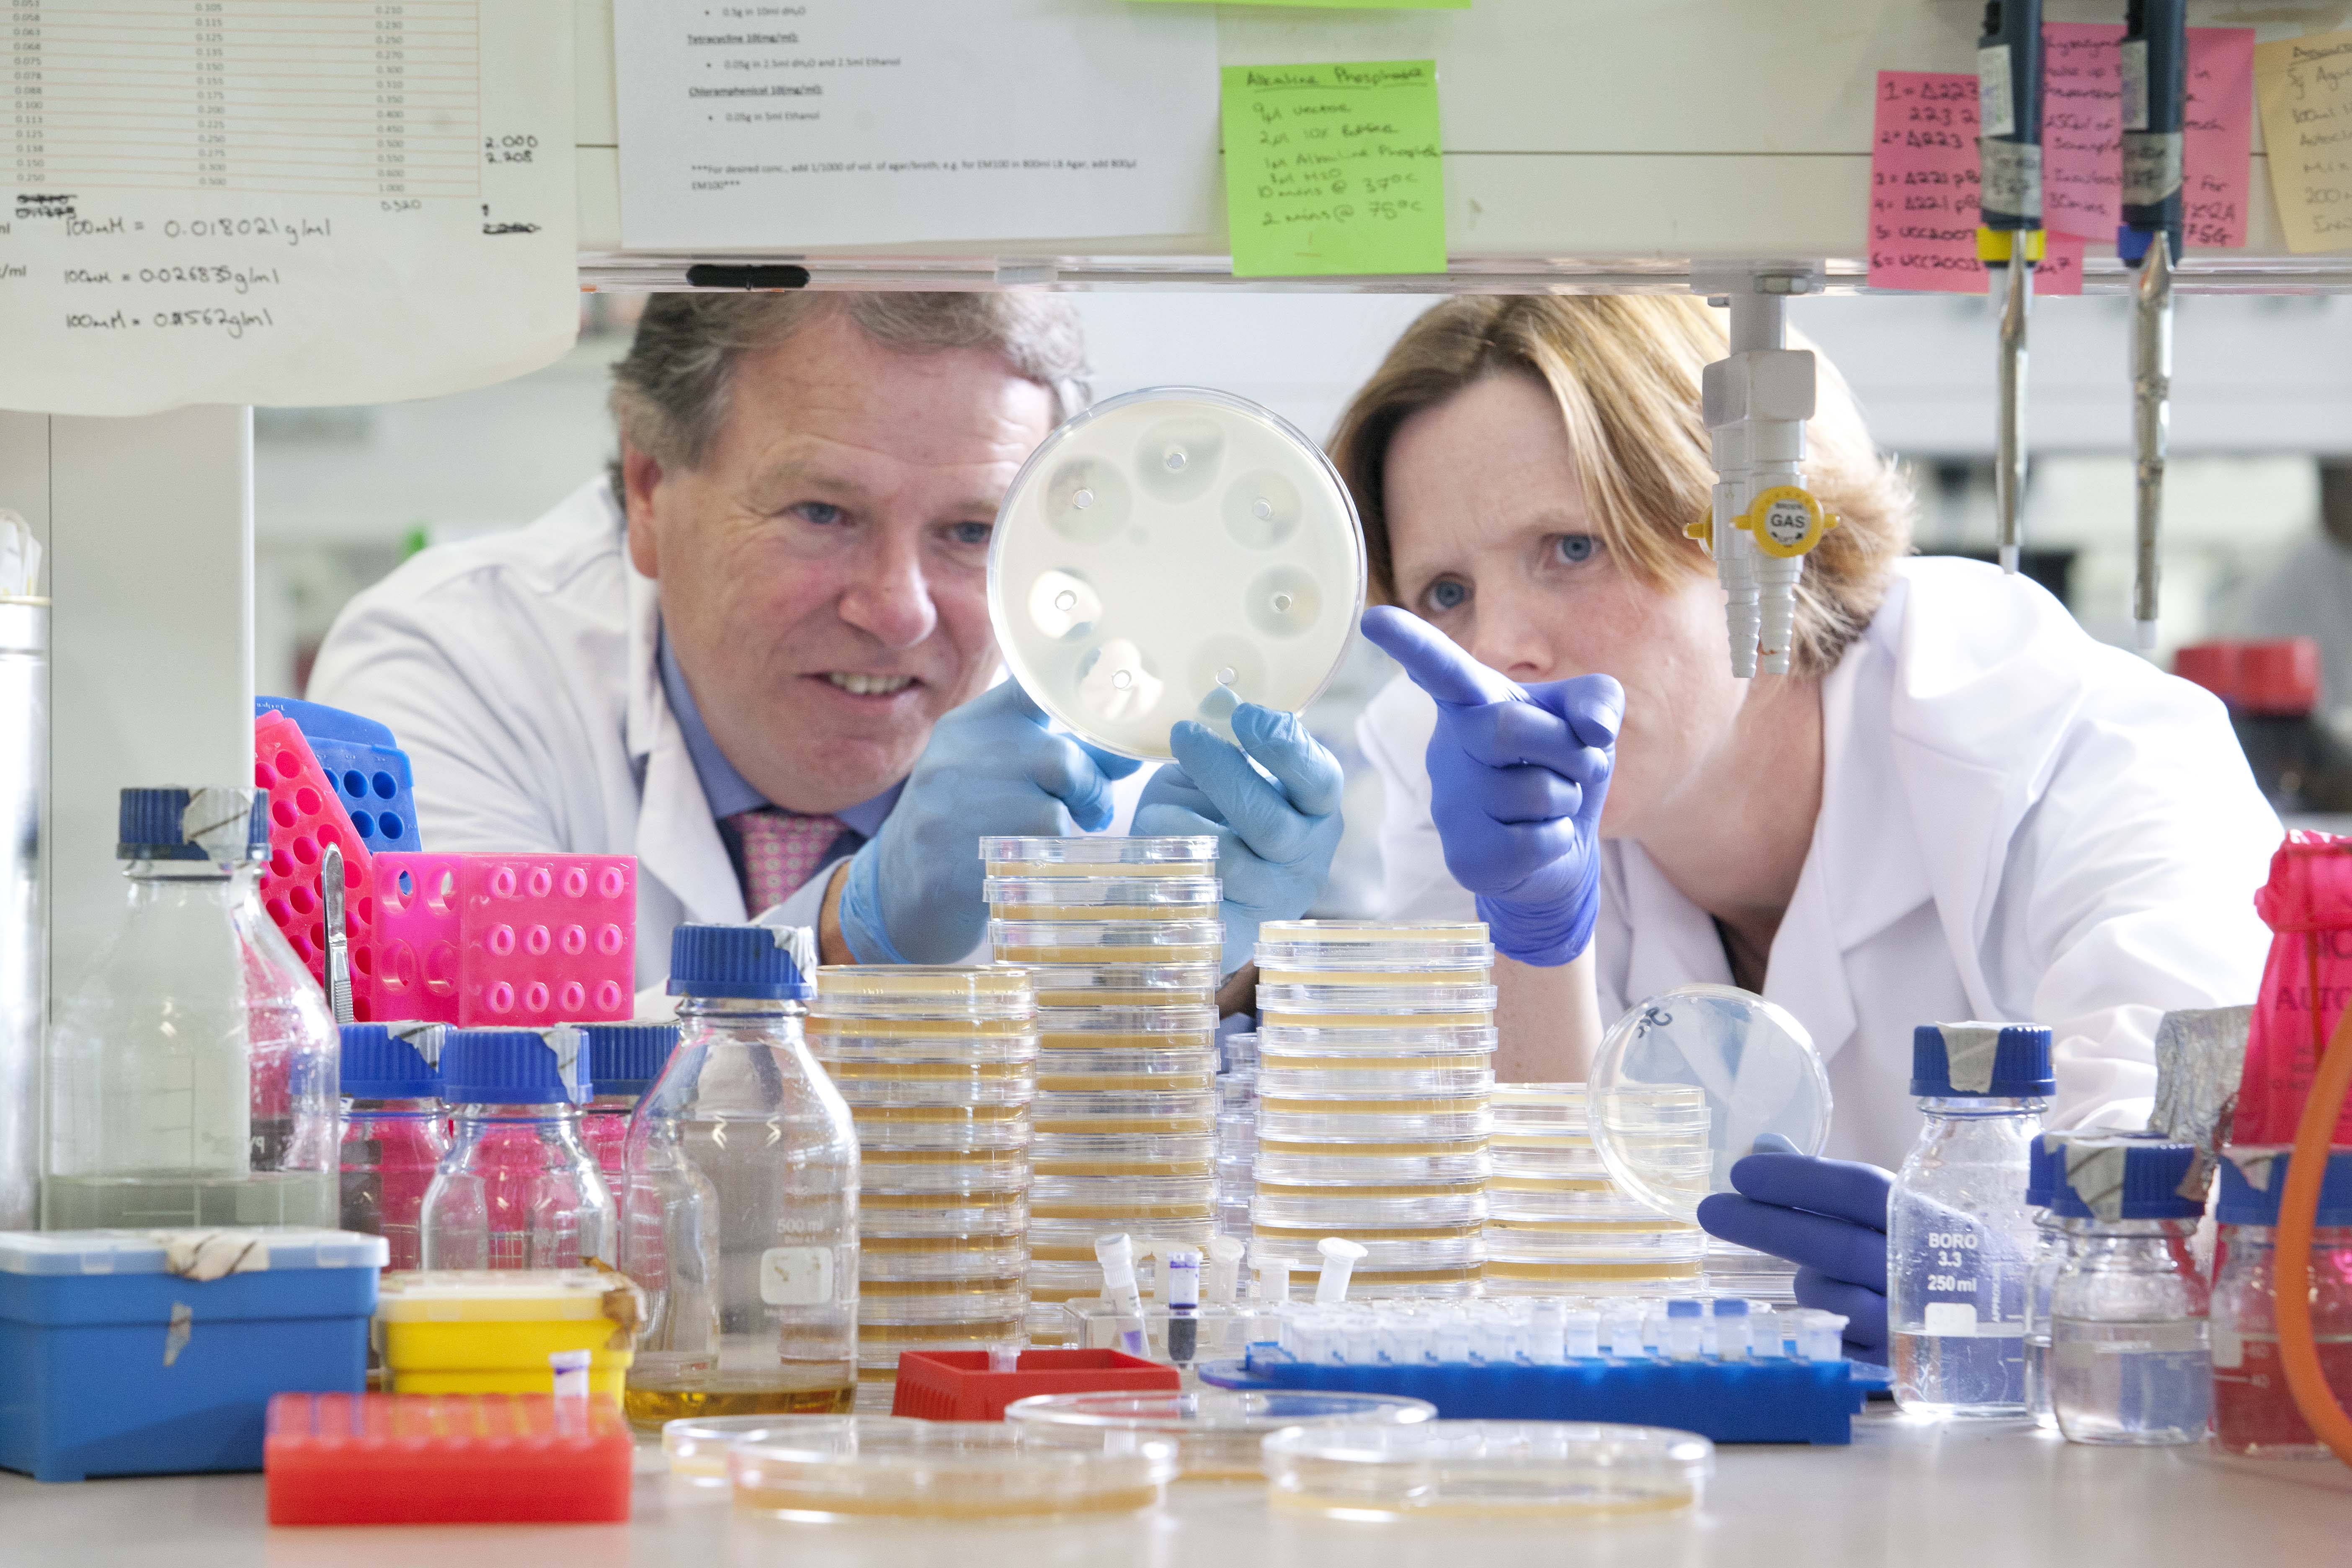 Establishment of APC Microbiome Institute creates fifty new jobs